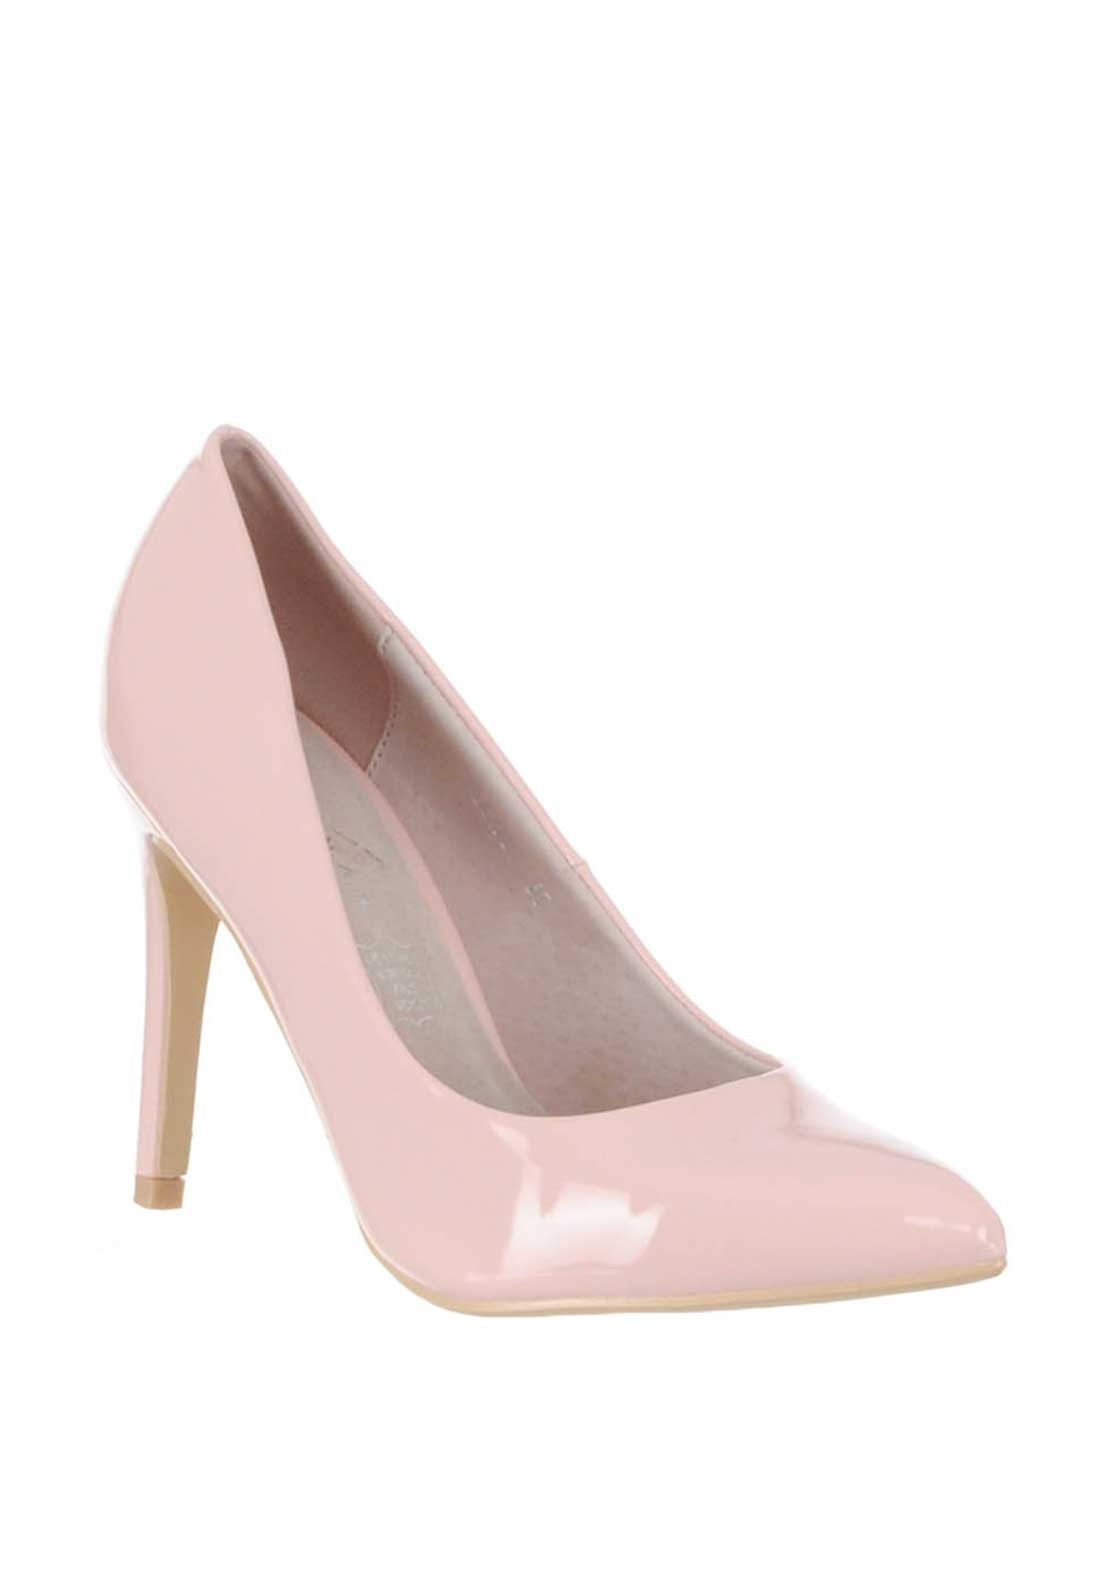 5b485898244 Lunar Patent Pointed Toe Heeled Shoes, Pink